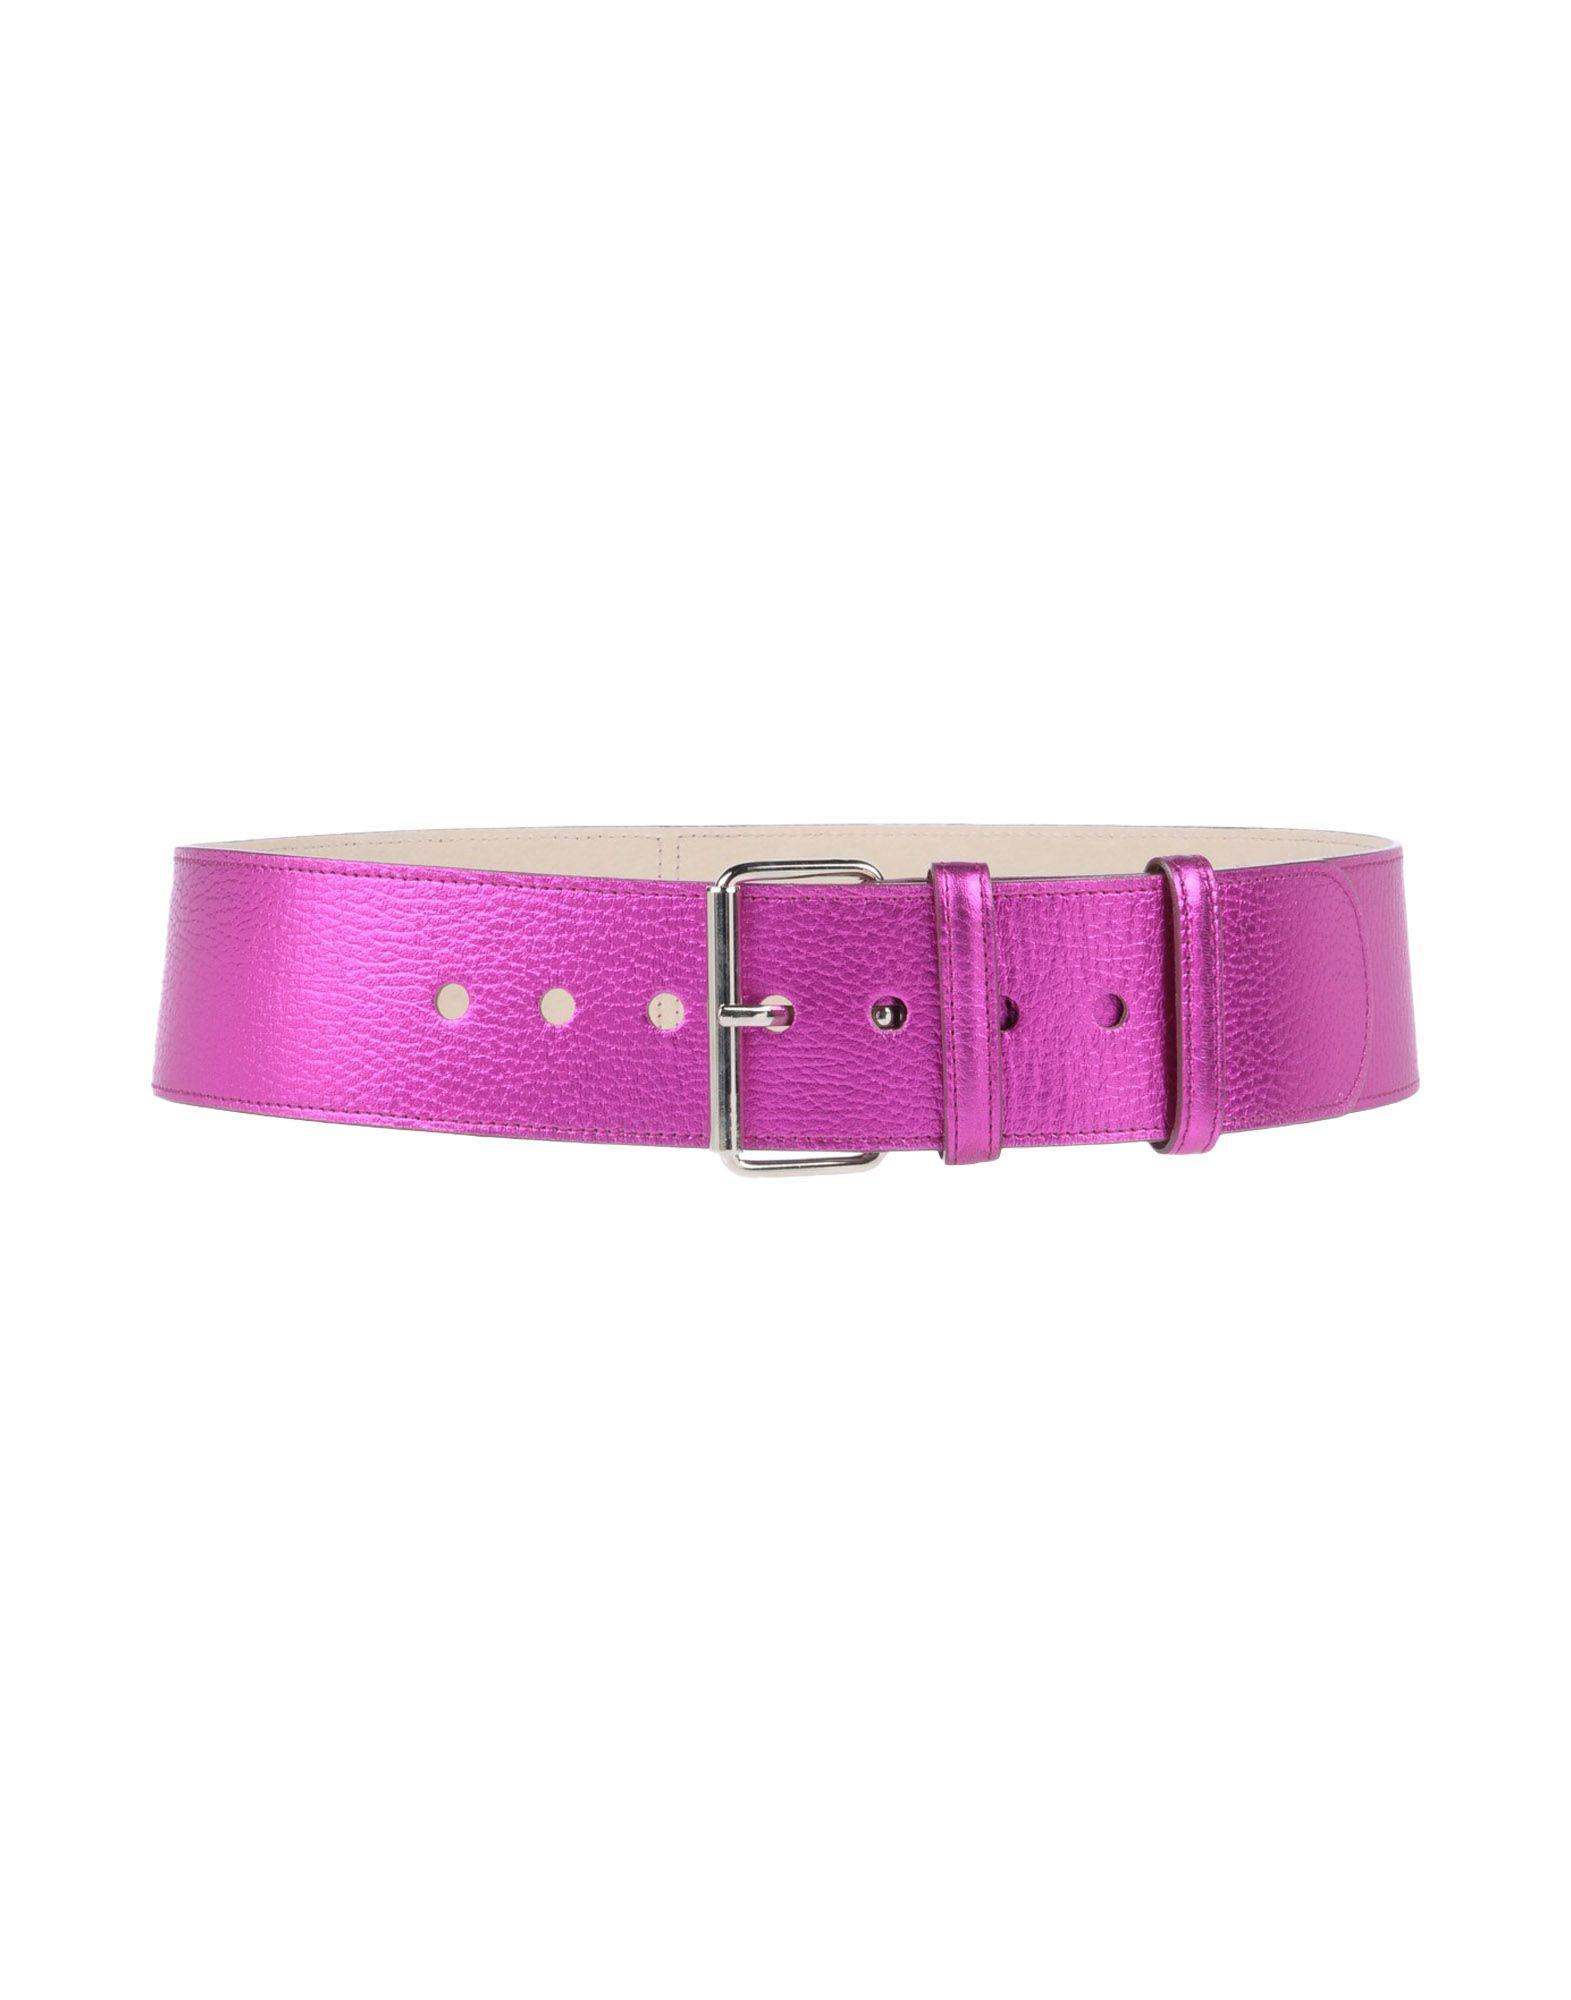 Small Leather Goods - Belts Virreina 9PFV0A